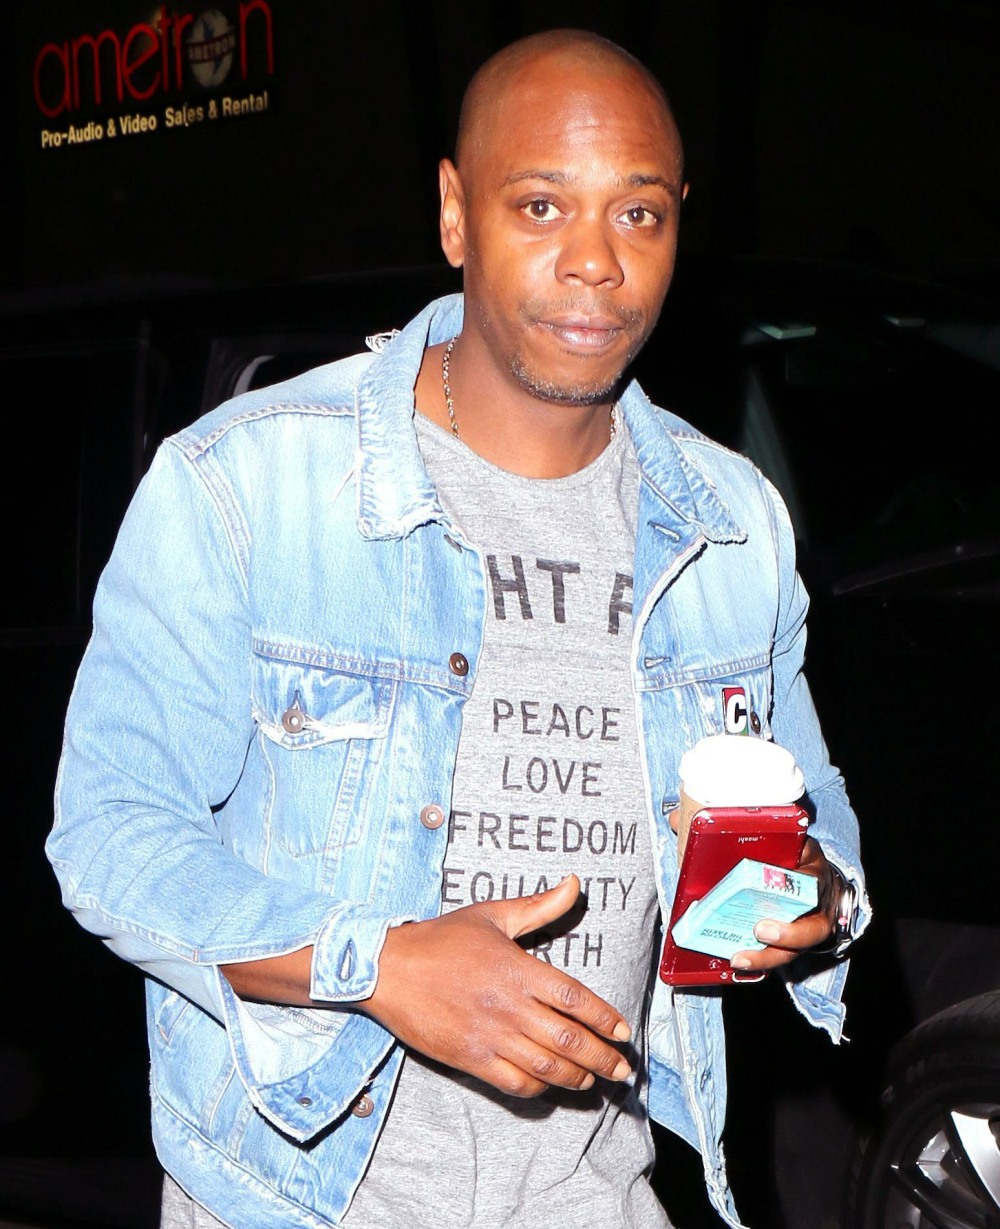 Dave Chappelle wearing denim on denim with plenty of holes and carrying a pack of smokes as he arrives for his performance at The Hollywood Palladium